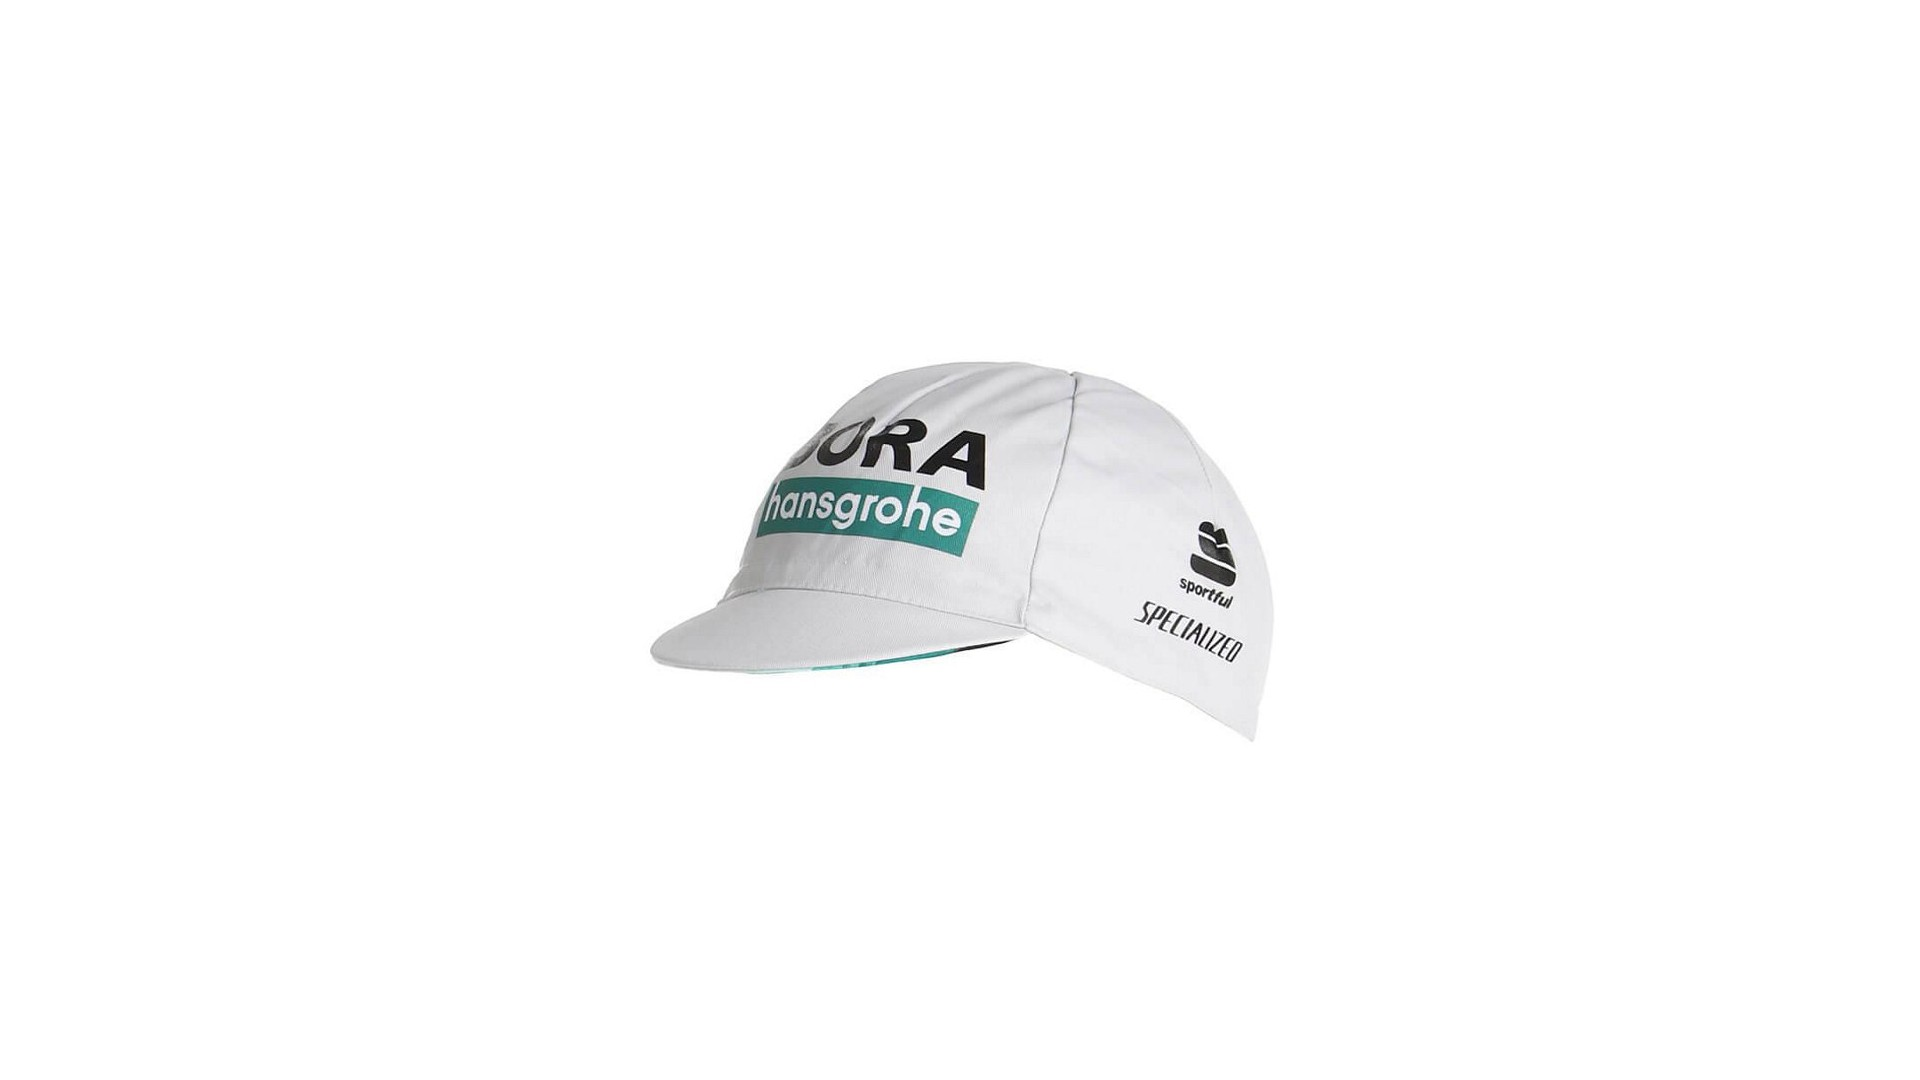 Bora Hansgrohe 2021 Team Cycling Cap Specialized White